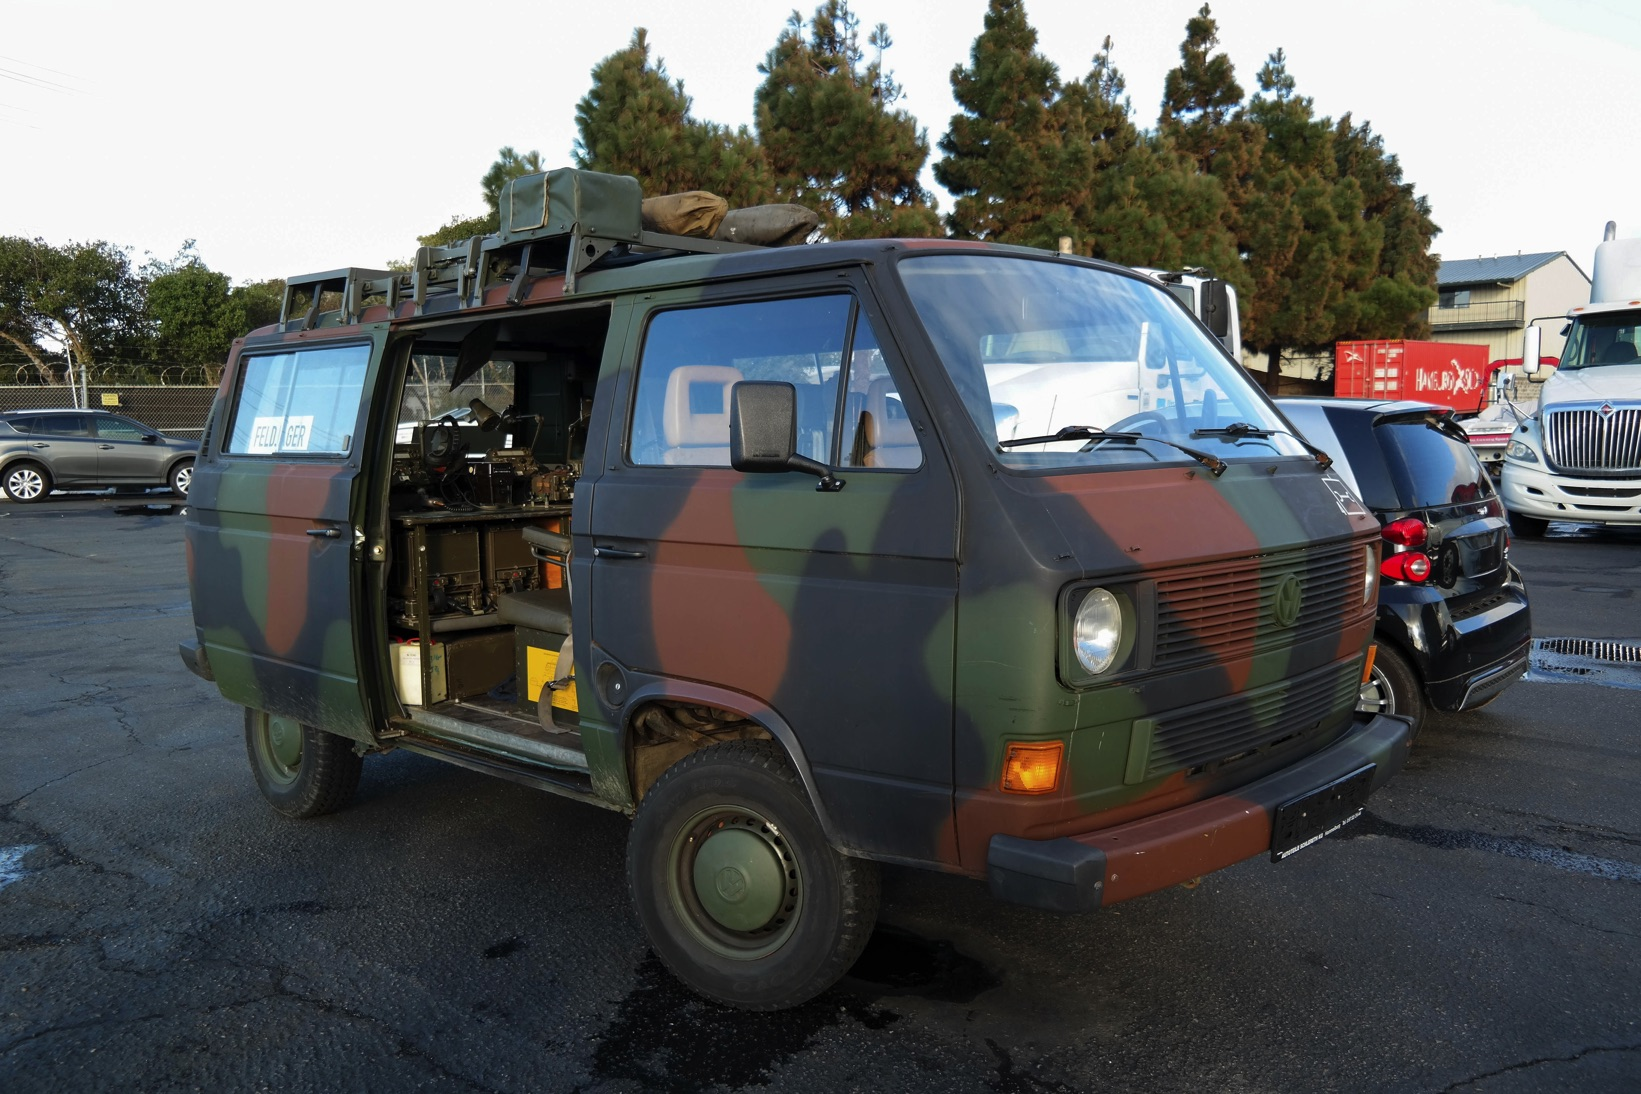 VW Vanagon's Incredible Journey from East Germany to California